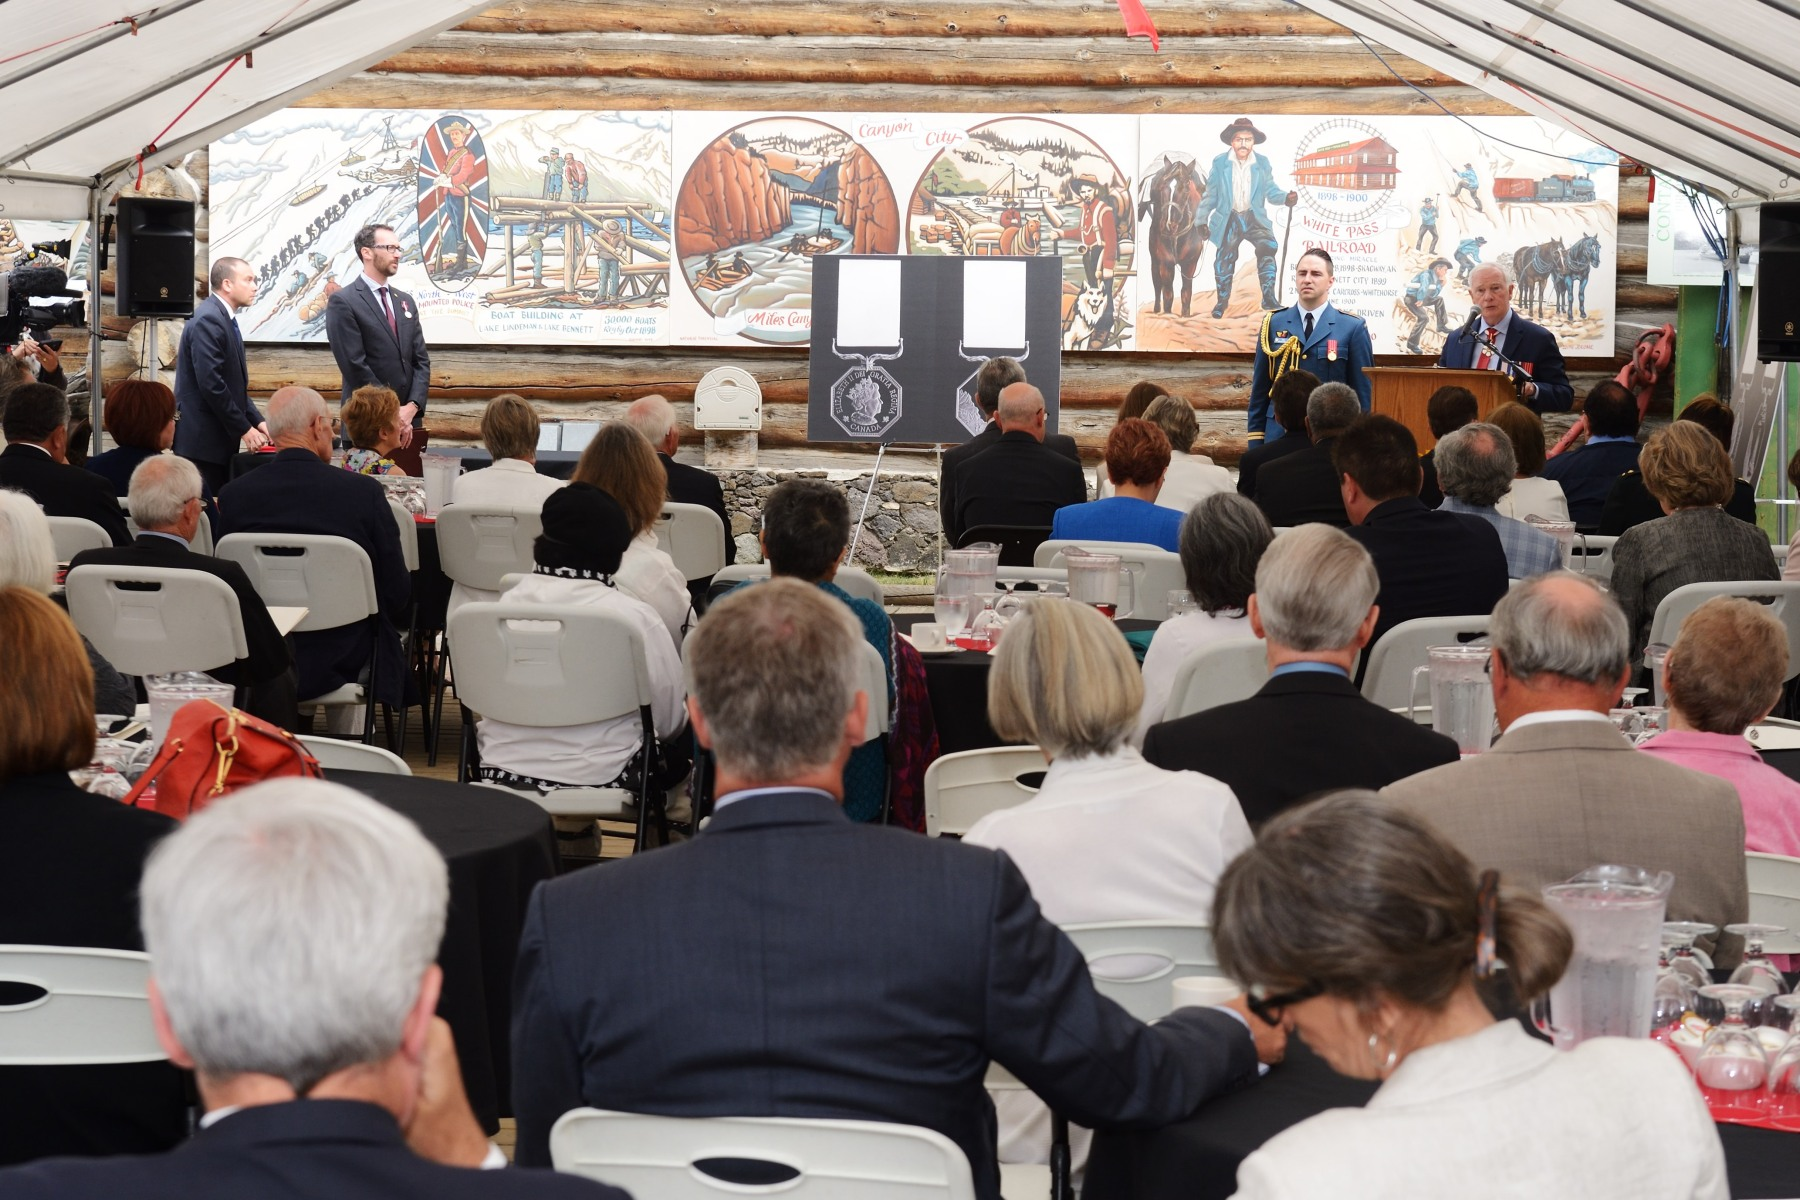 The Governor General presided over the inaugural presentation ceremony of the newly created Polar Medal at the MacBride Museum of Yukon History in Whitehorse, Yukon.